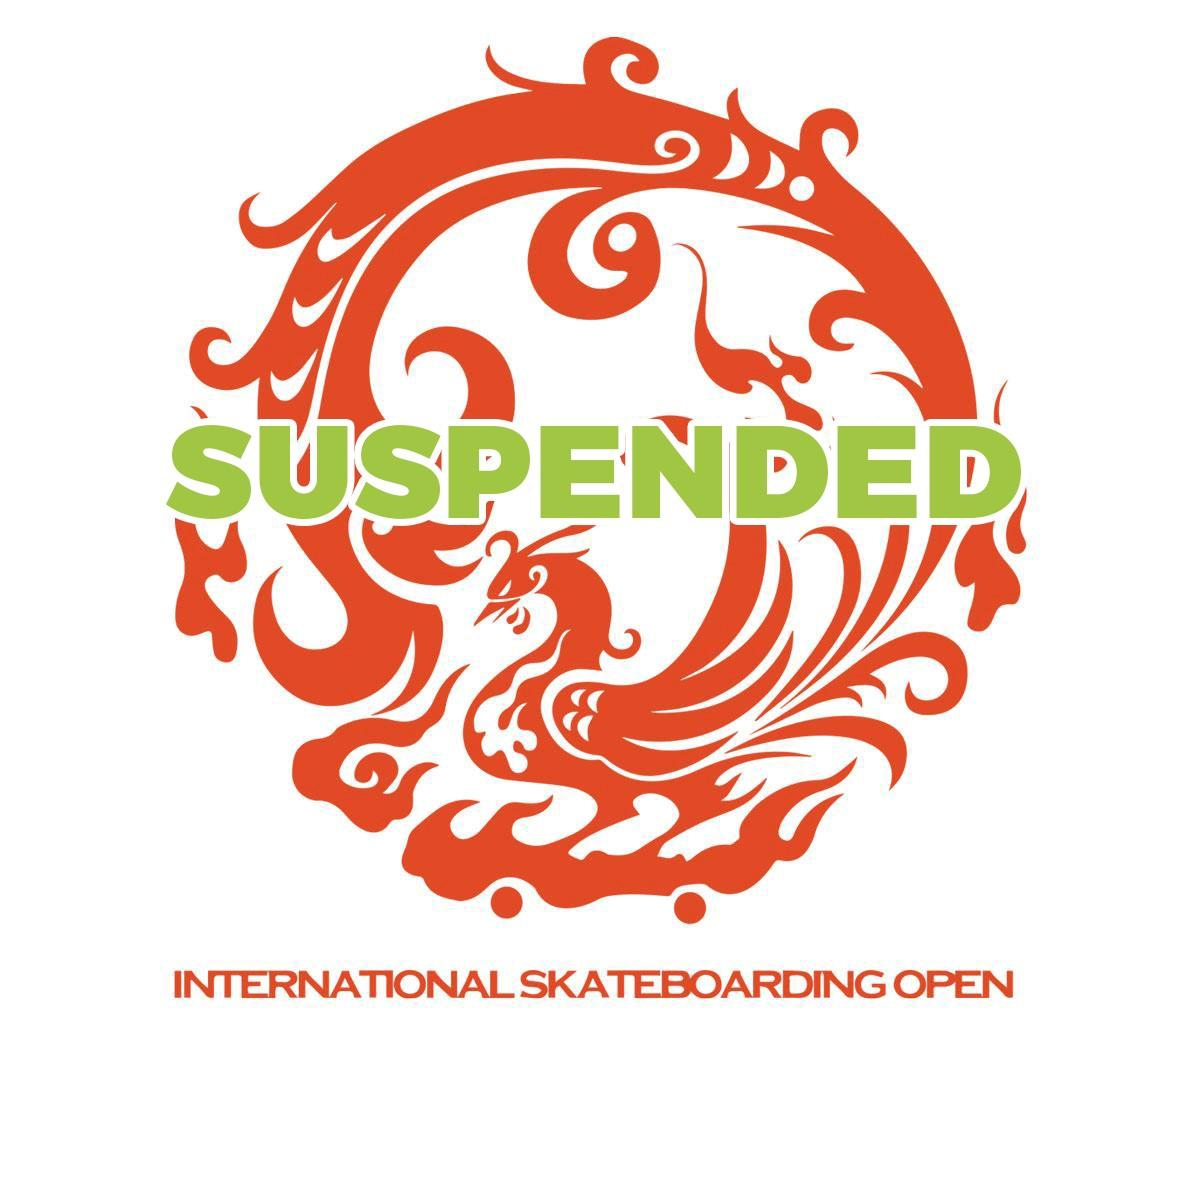 SUSPENDED: ISO Yangcheng Street and Park 2020 - Pro Tour Park and 5 Star Street Tokyo 2020 Qualification Event SEASON #2